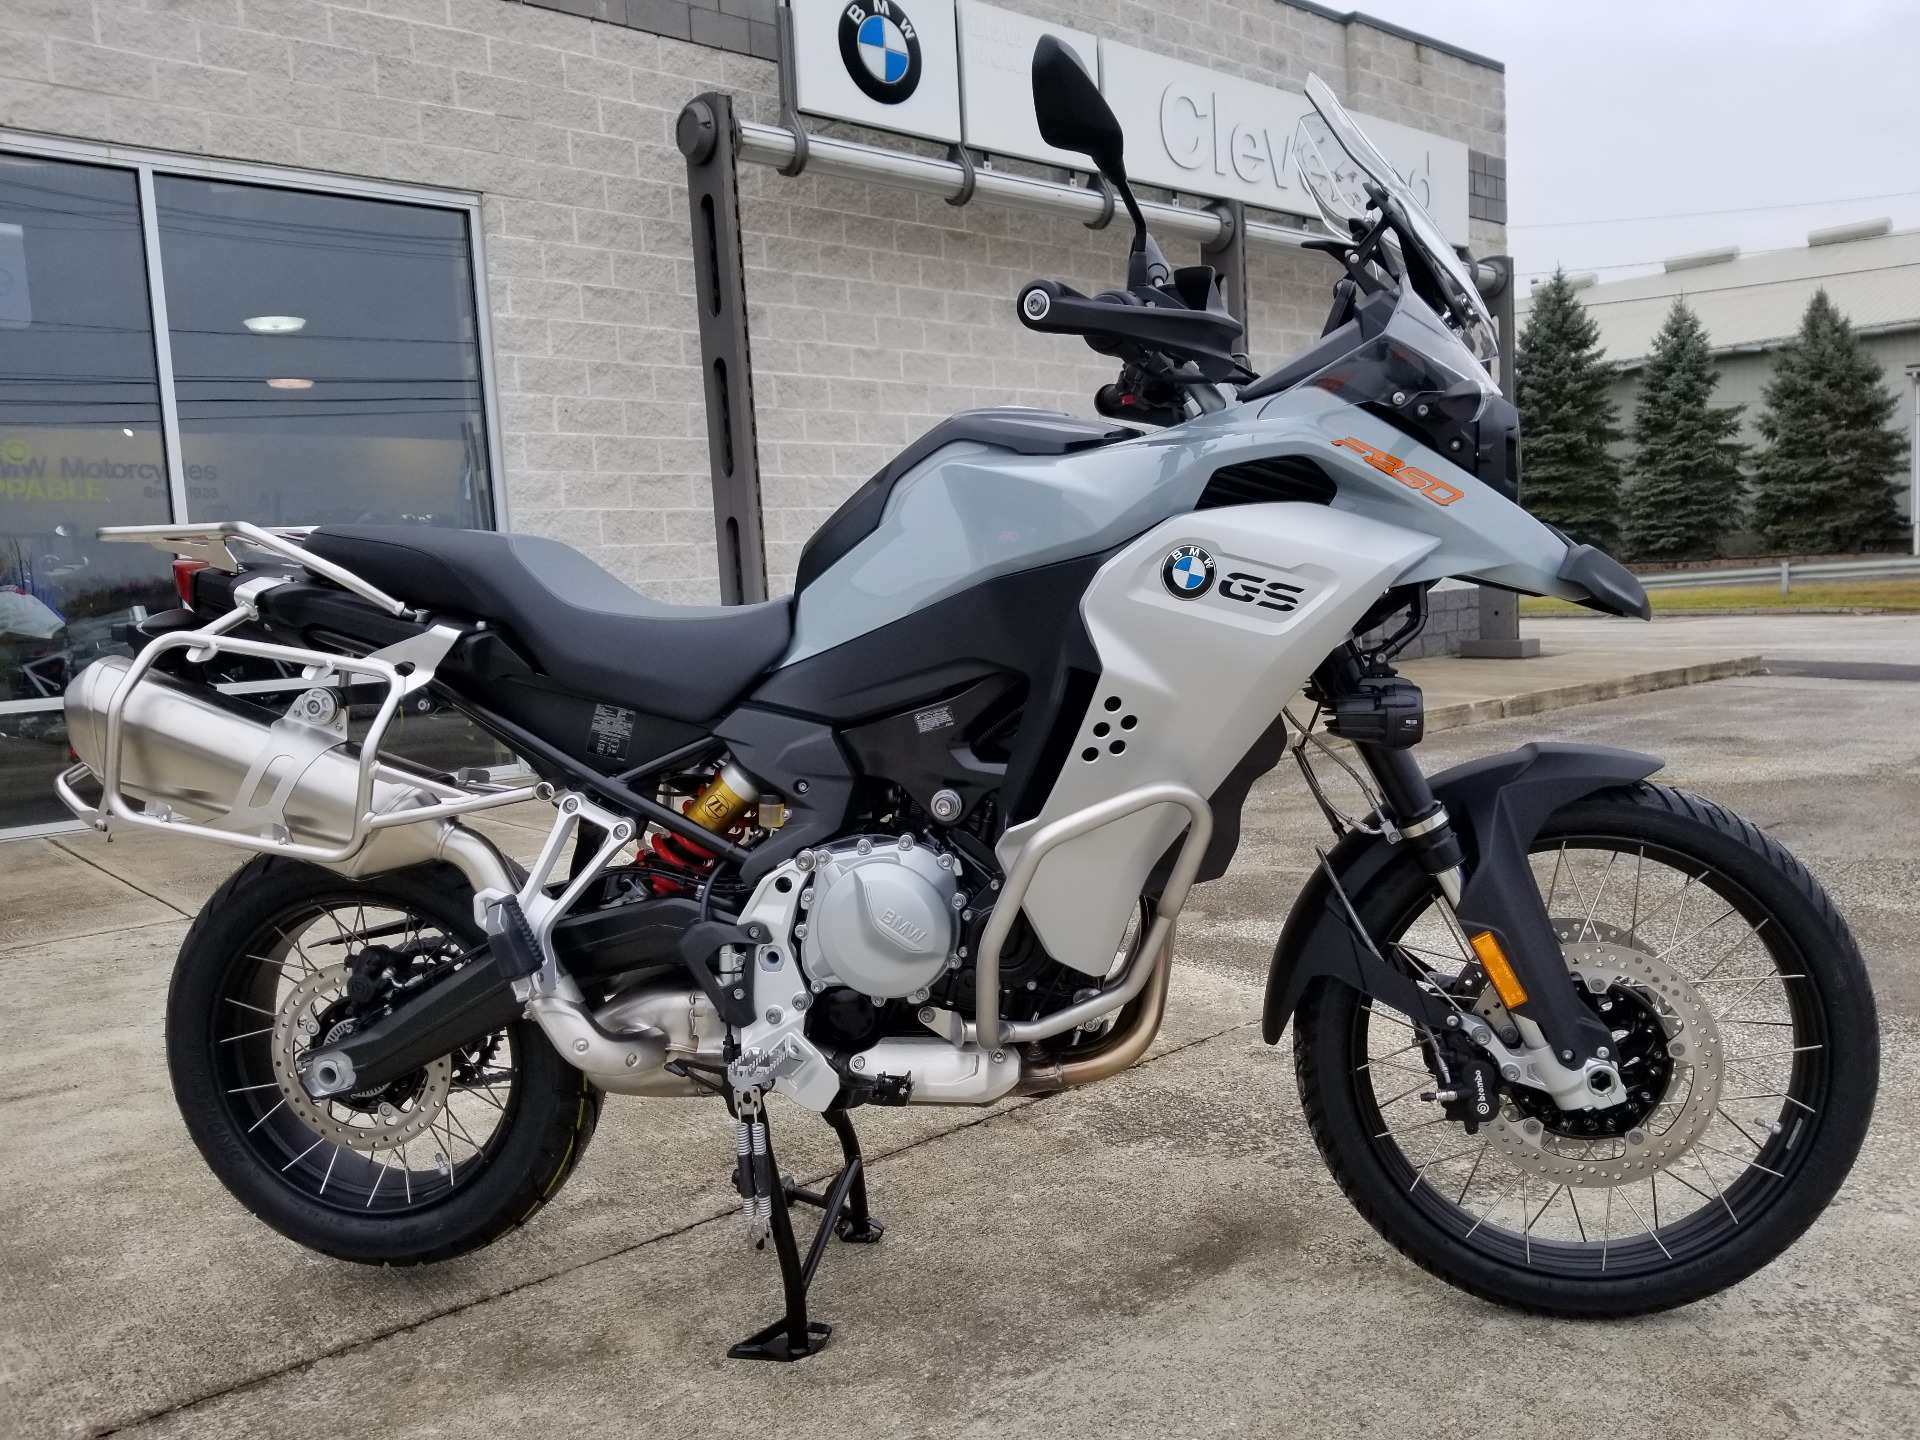 47 Concept of Bmw F850Gs Adventure 2019 Engine Research New by Bmw F850Gs Adventure 2019 Engine